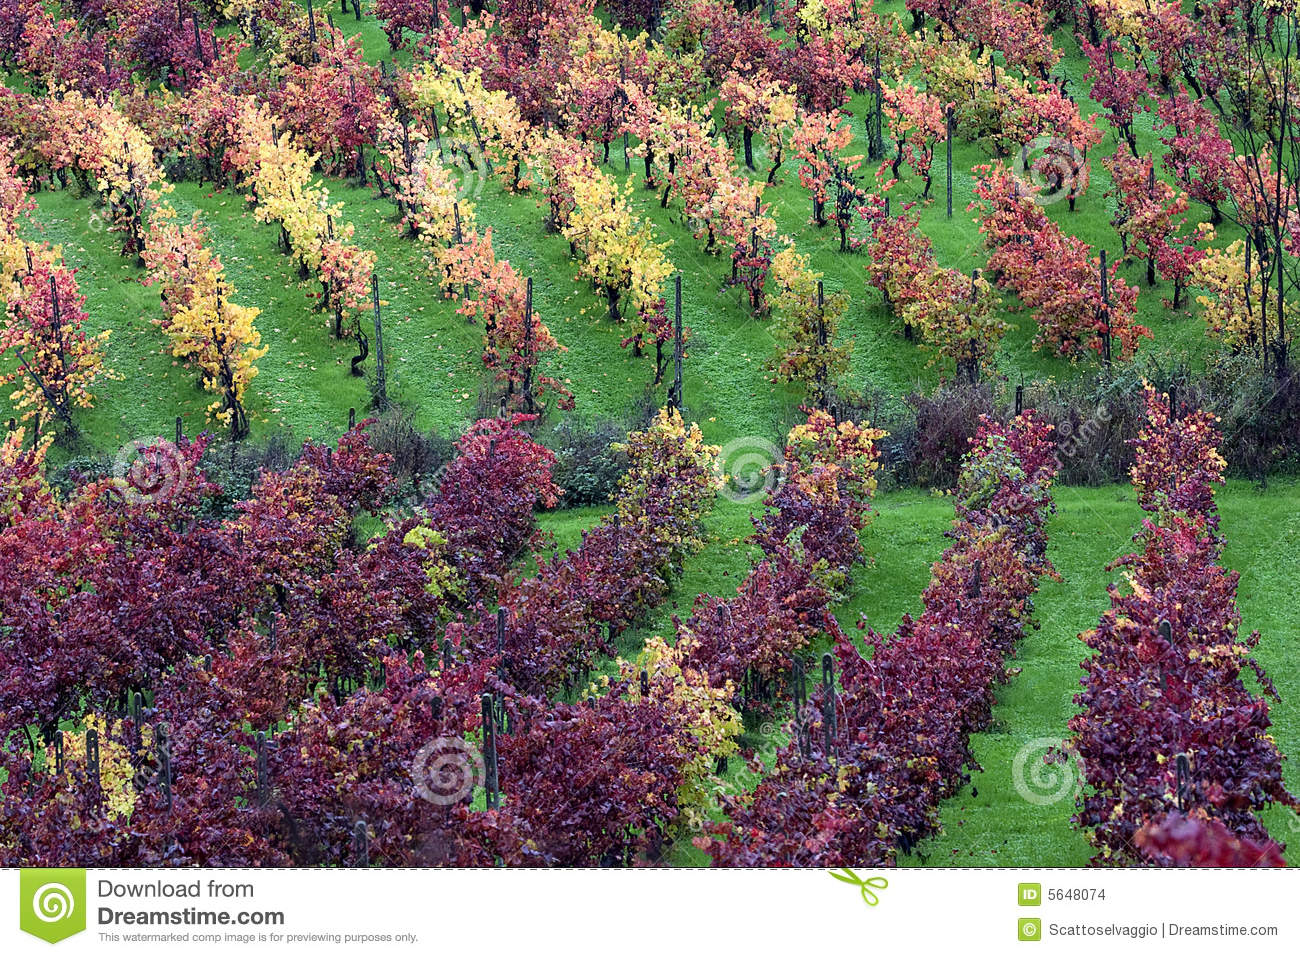 The light in the vineyard. Colors of autumn vineyards in the Scuropasso Valley, Rocca de Giorgi, Oltrepo Pavese, Pavia, Italy.